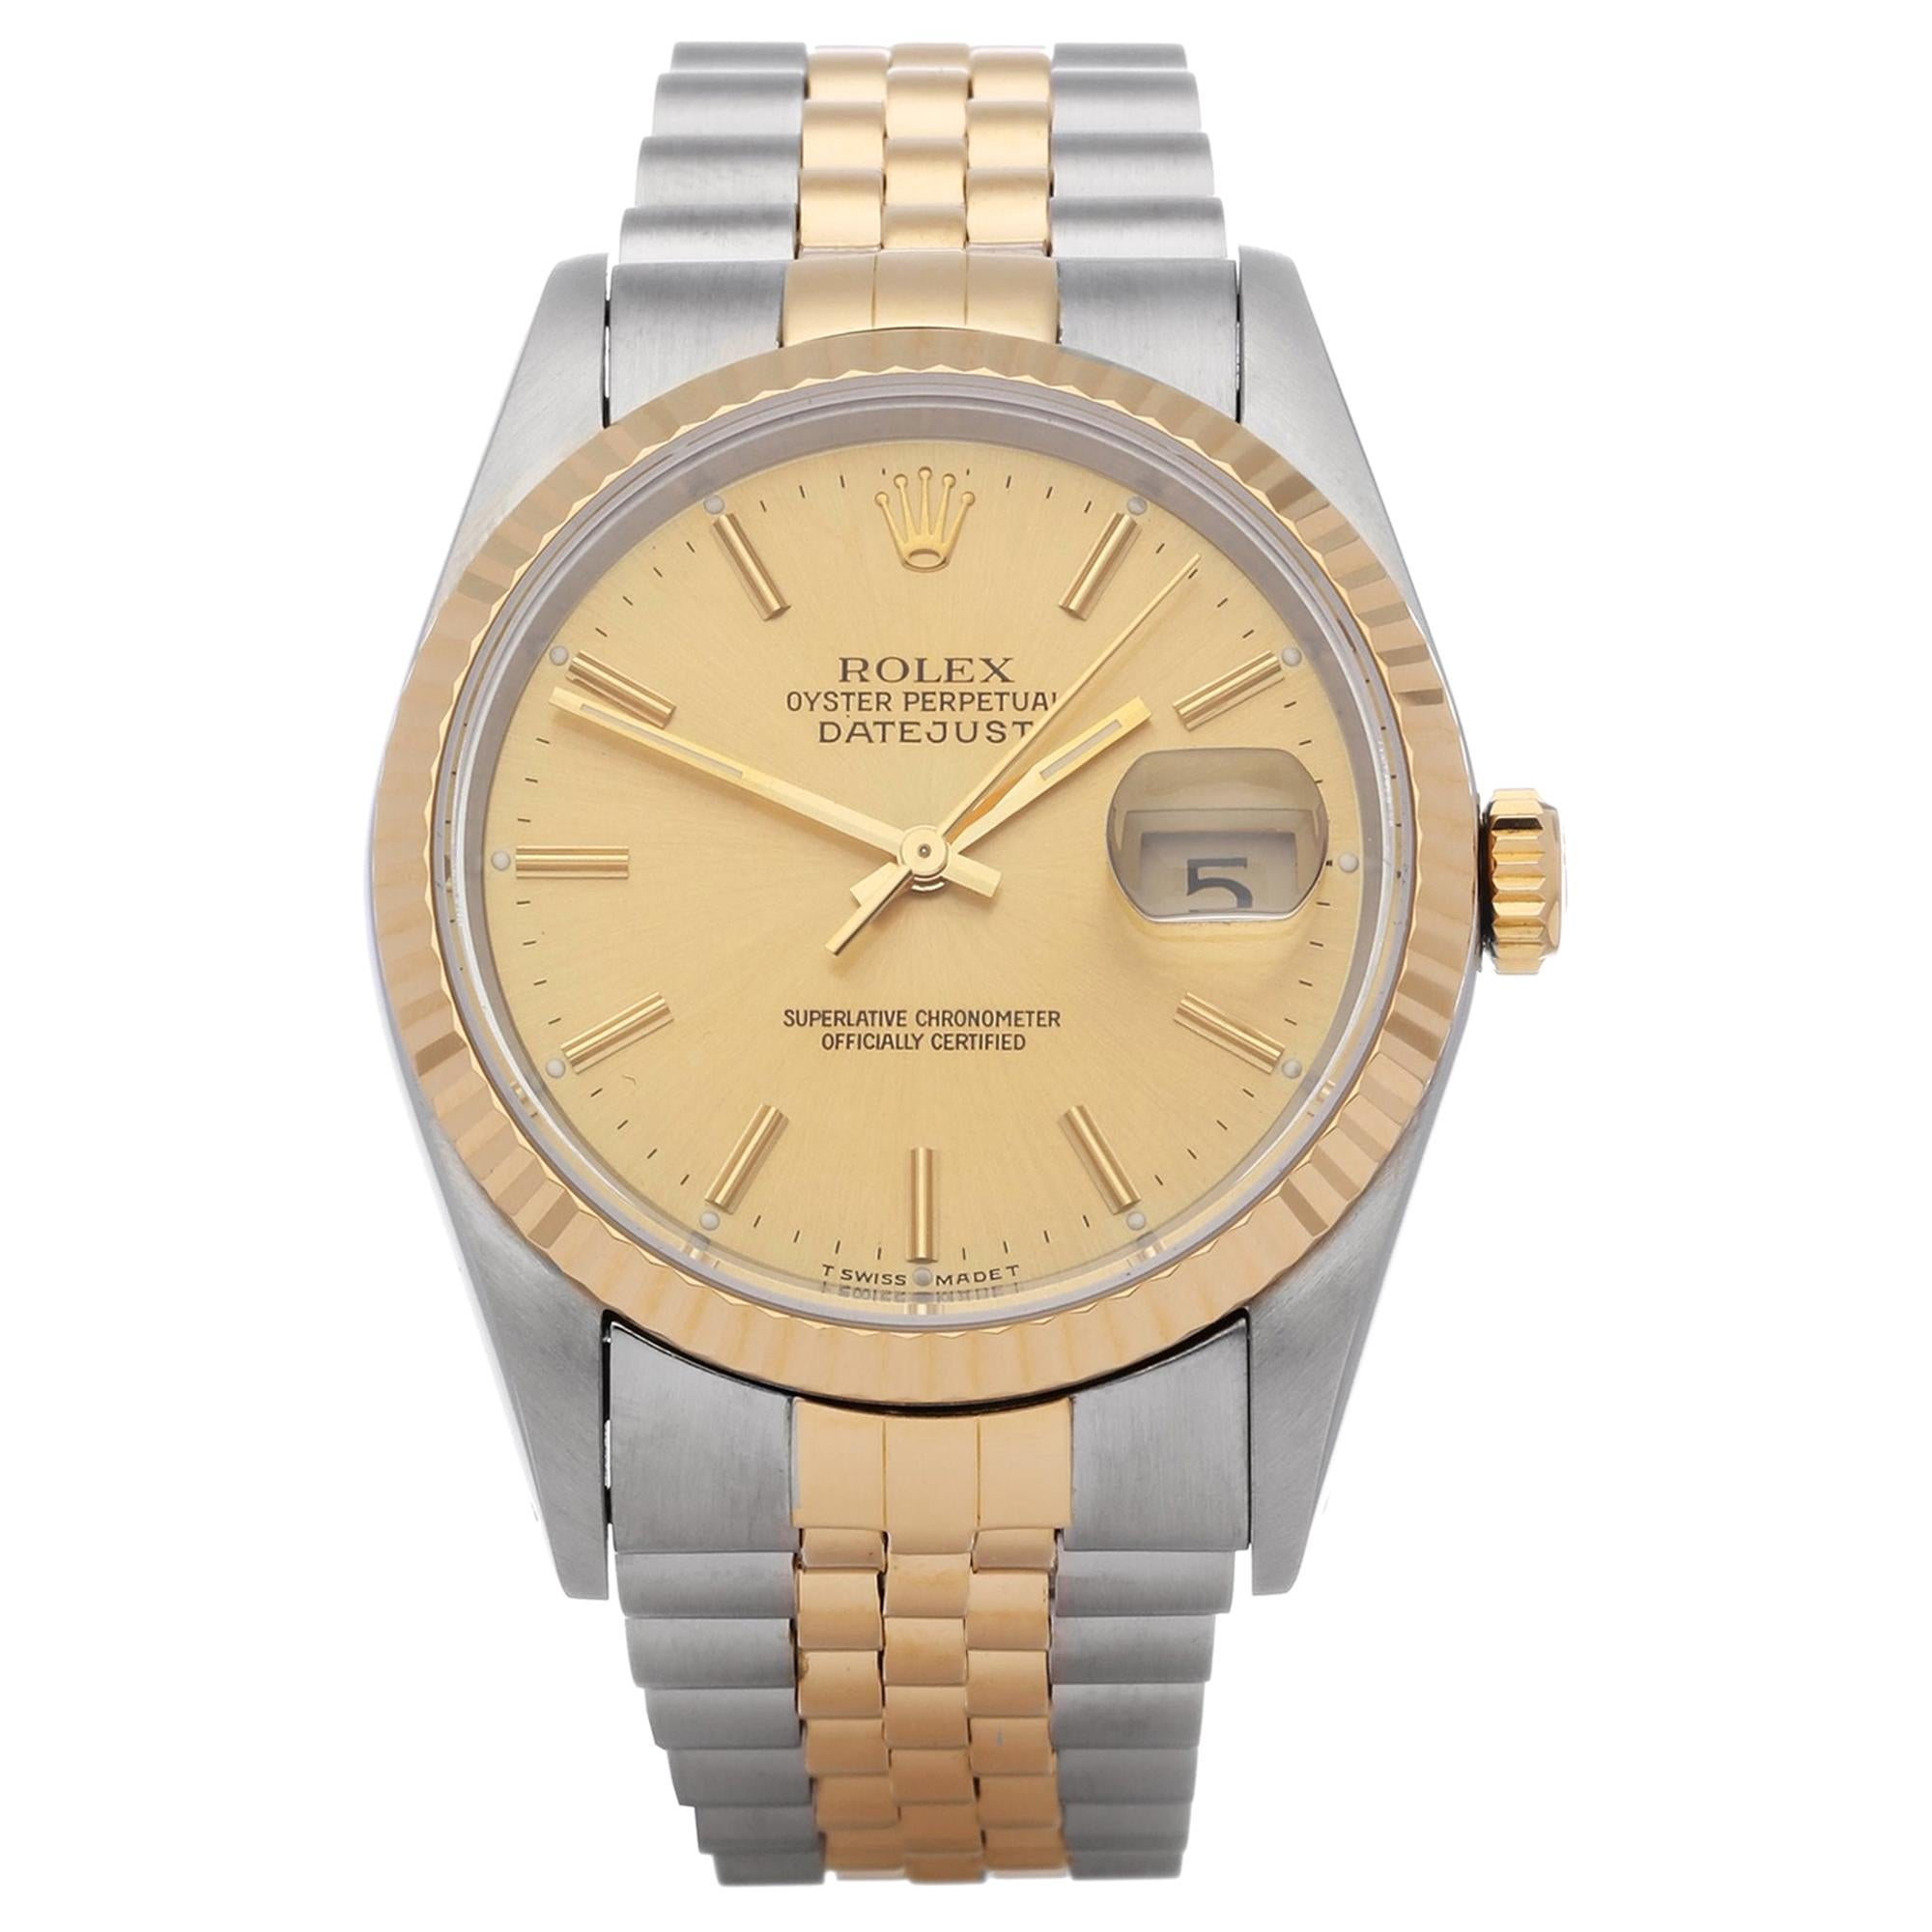 Rolex Datejust 36 16233 Unisex Yellow Gold & Stainless Steel Watch